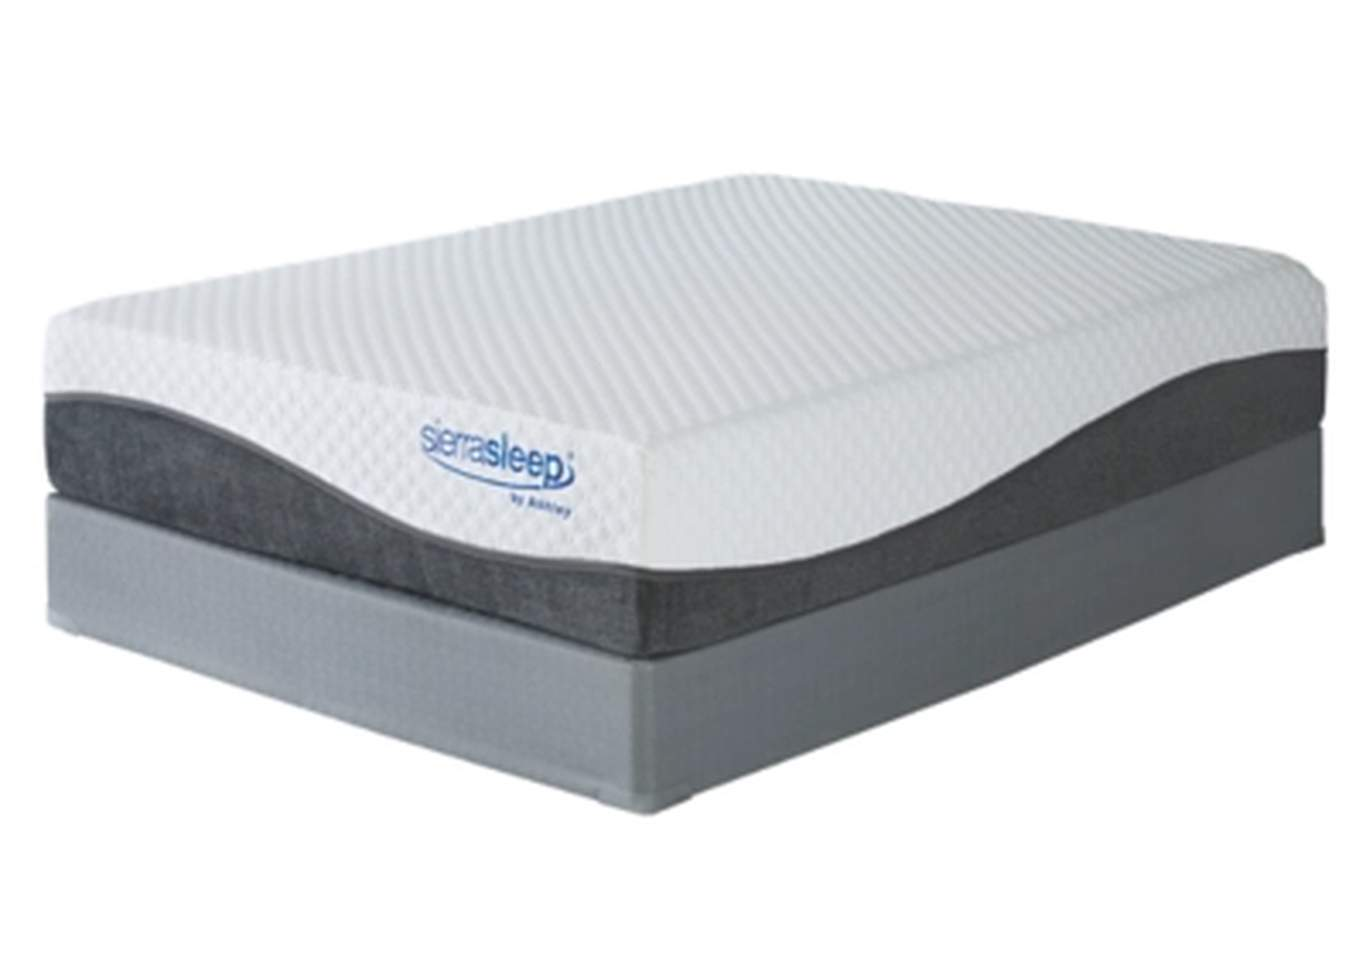 Mygel Hybrid 1300 King Mattress w/Foundation,Sierra Sleep